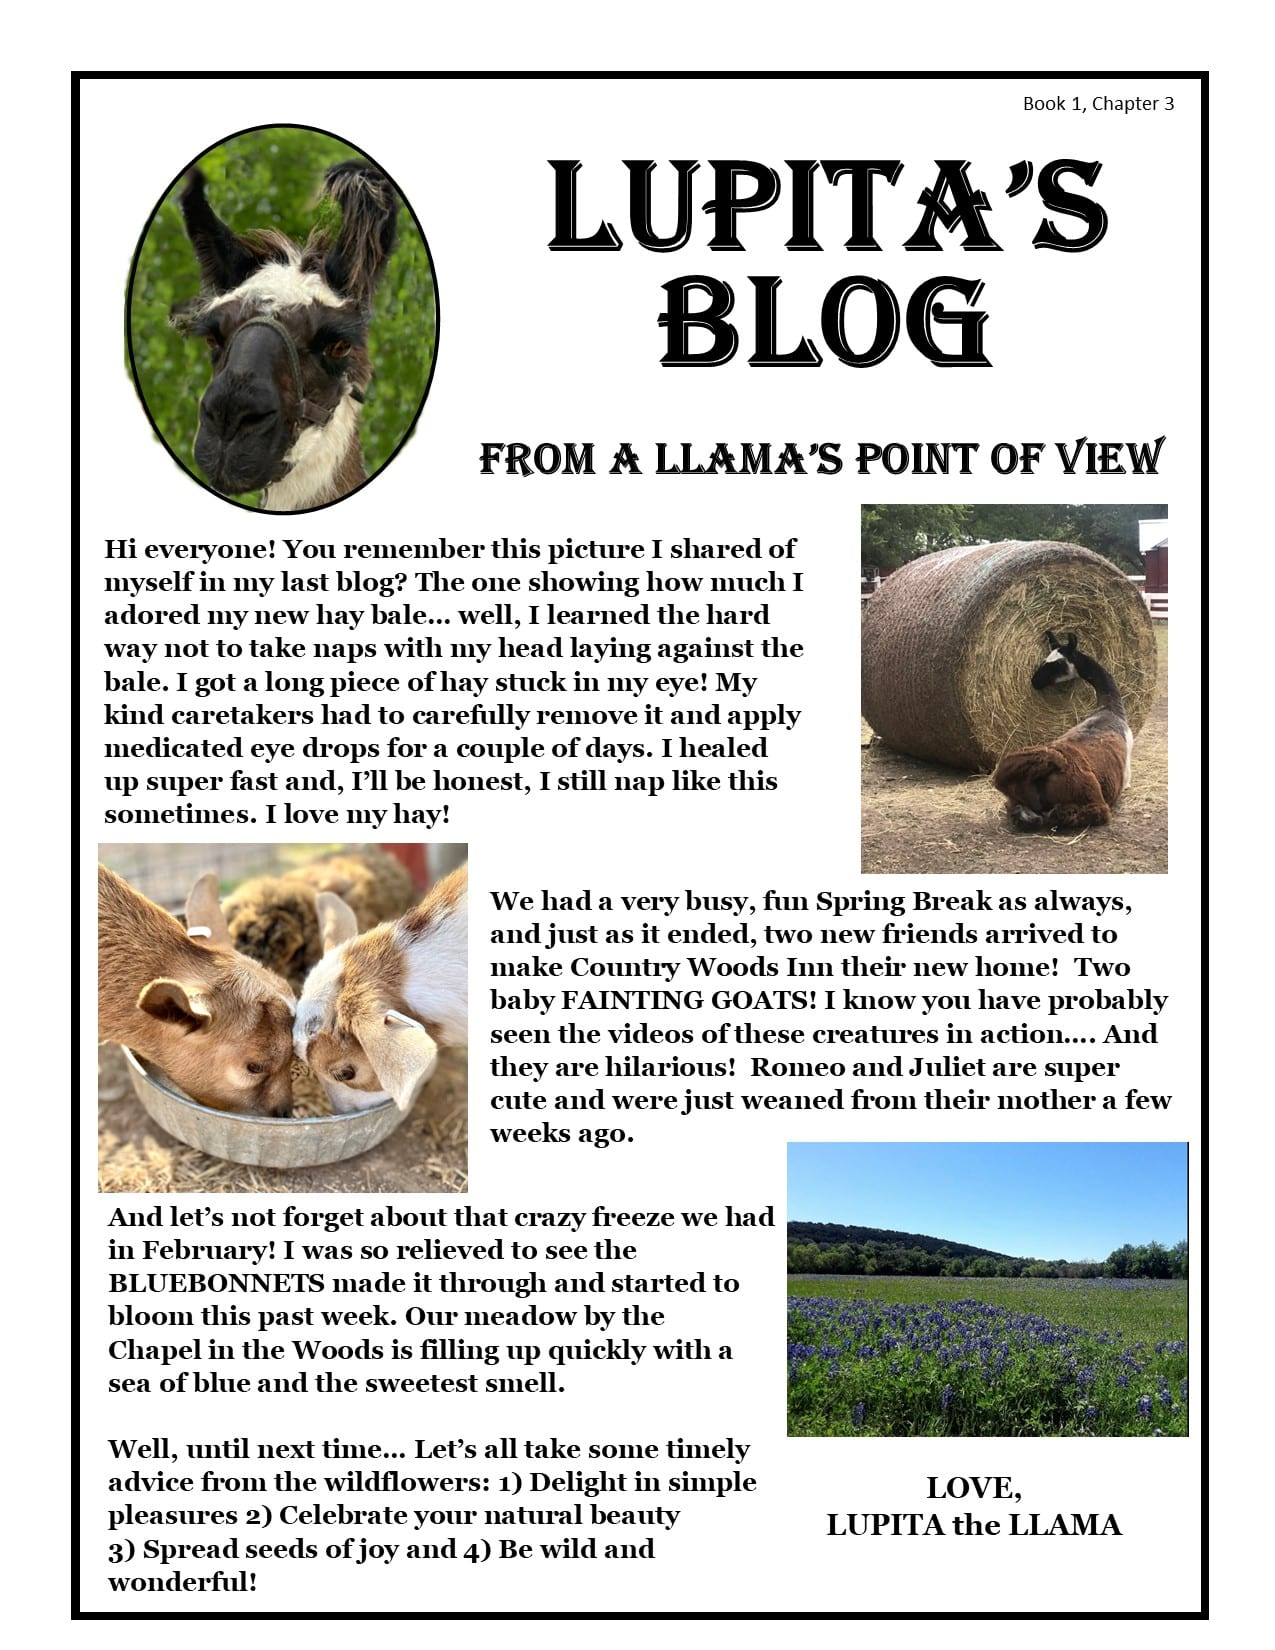 Blog about barnyard life from a Llama's perspective